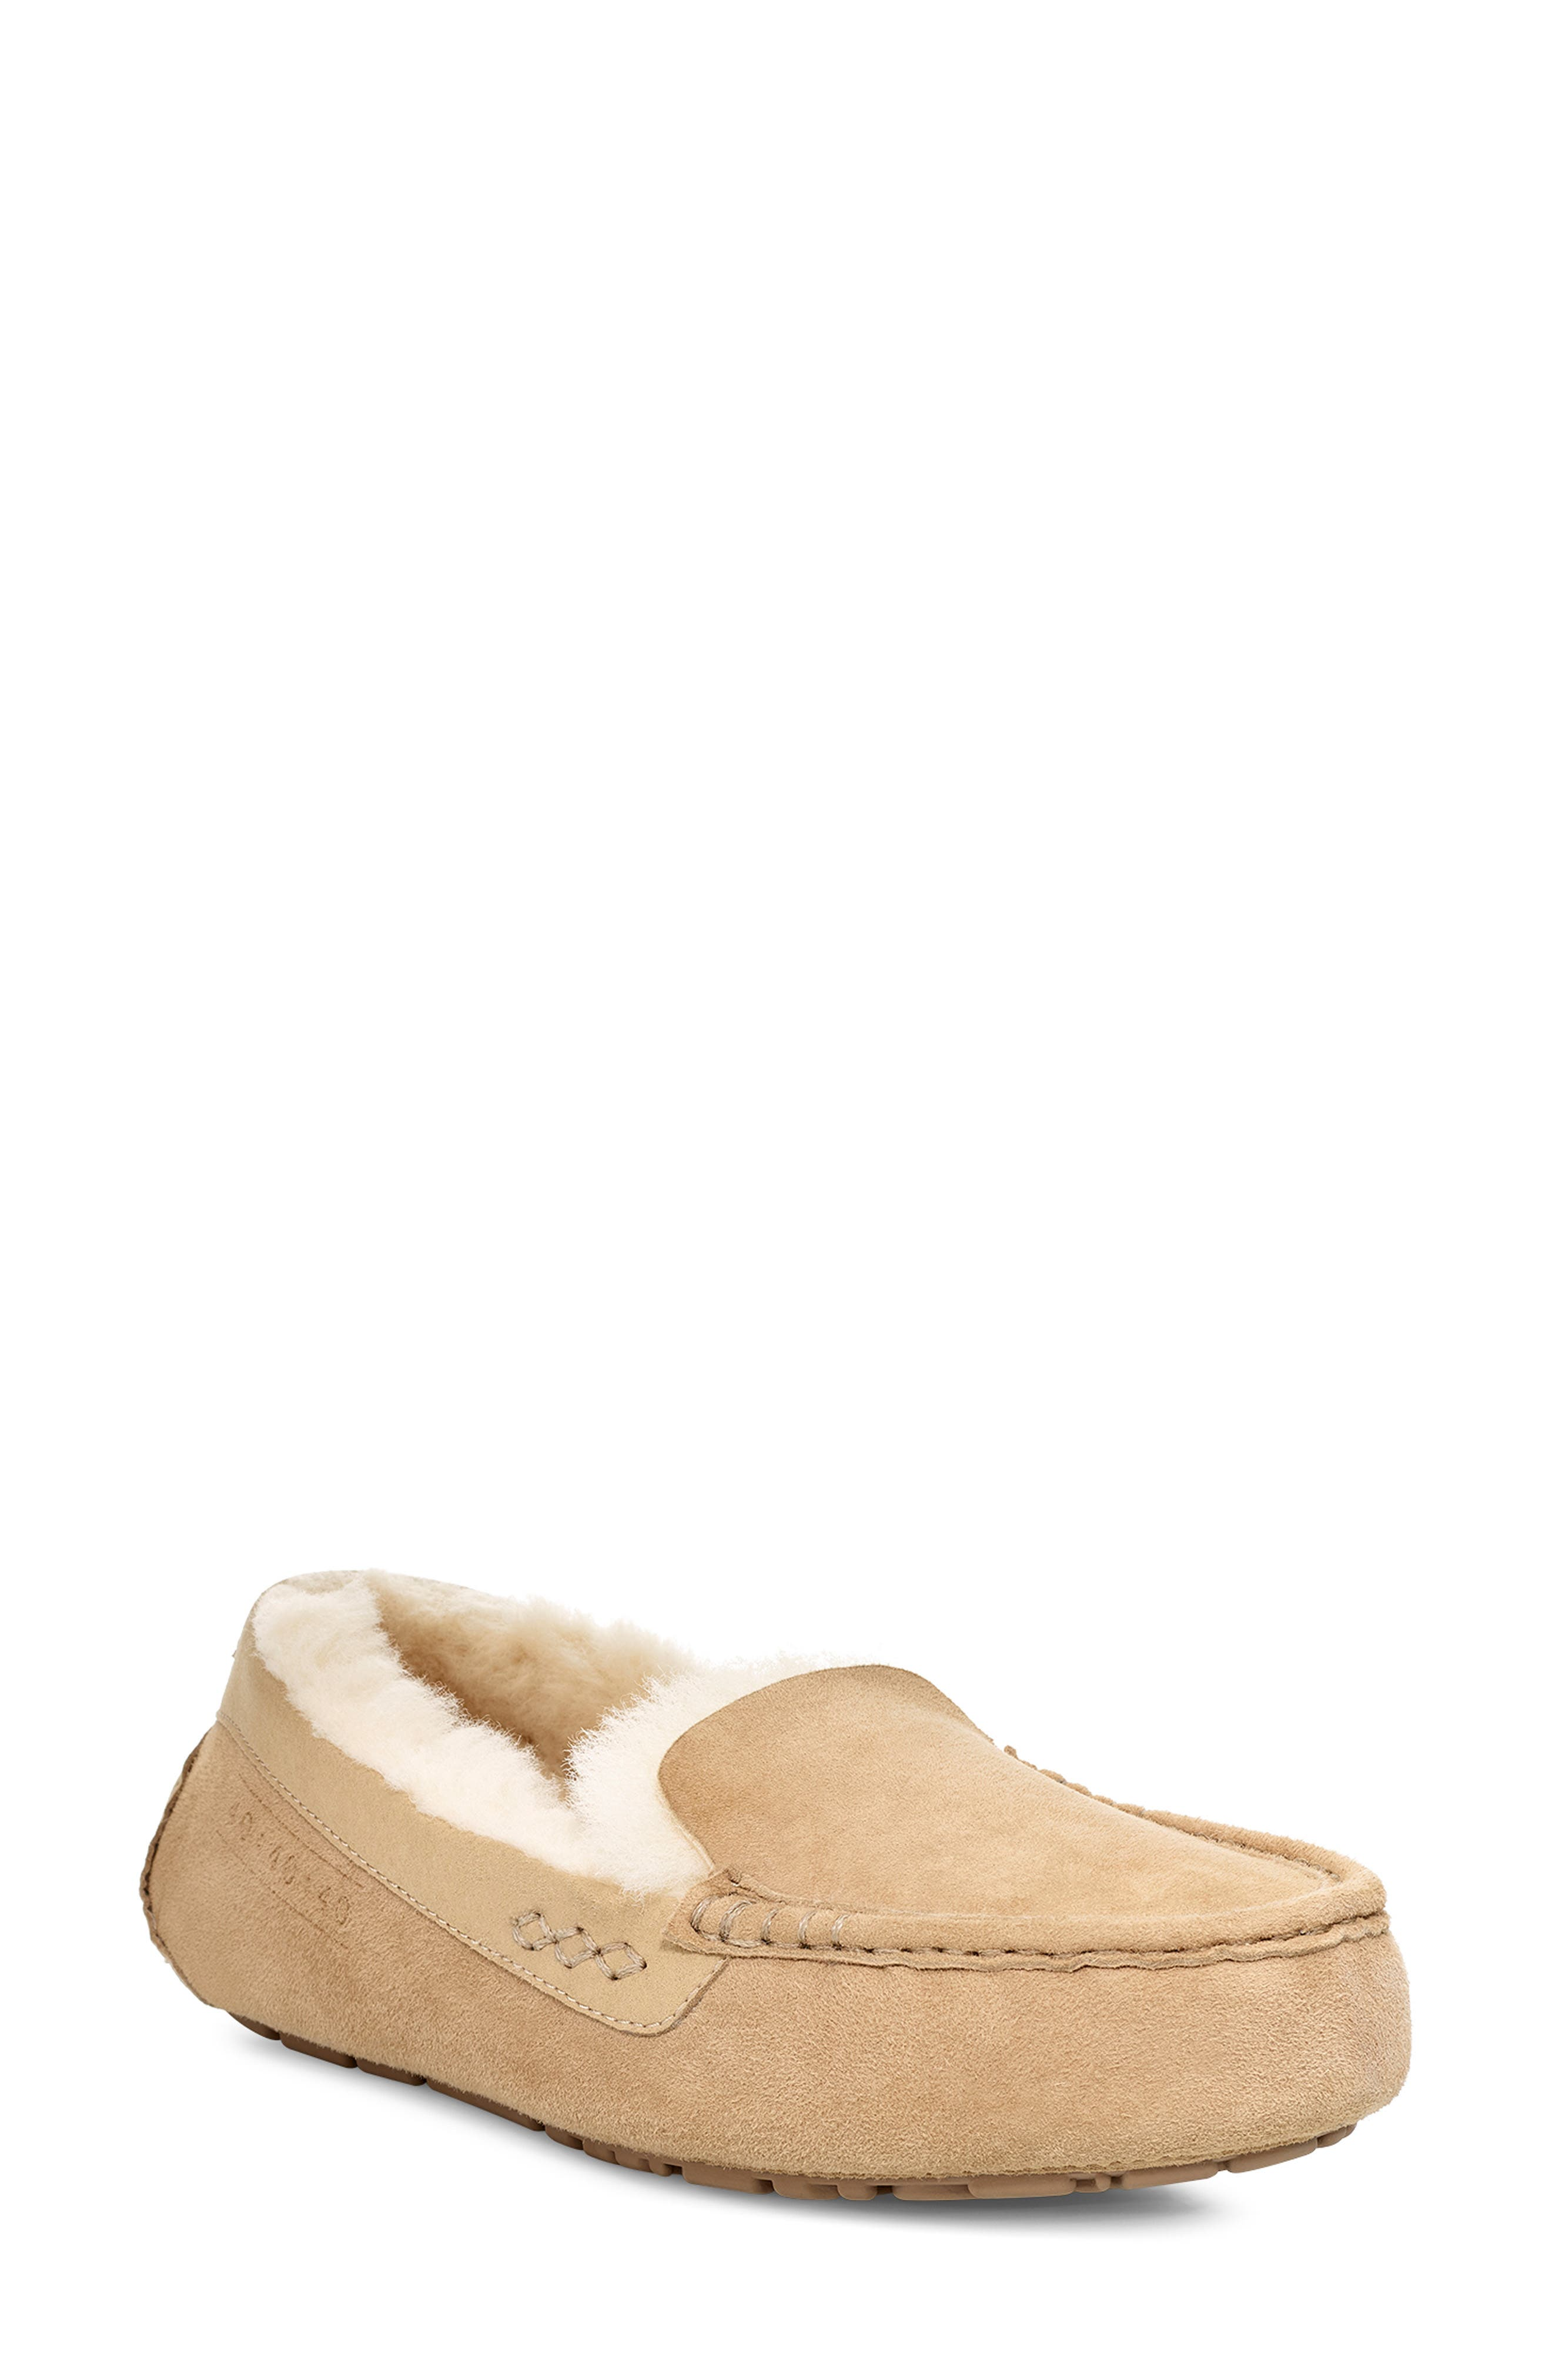 UGG<SUP>®</SUP> Ansley 40:40:40 Anniversary Slipper, Main, color, SAND